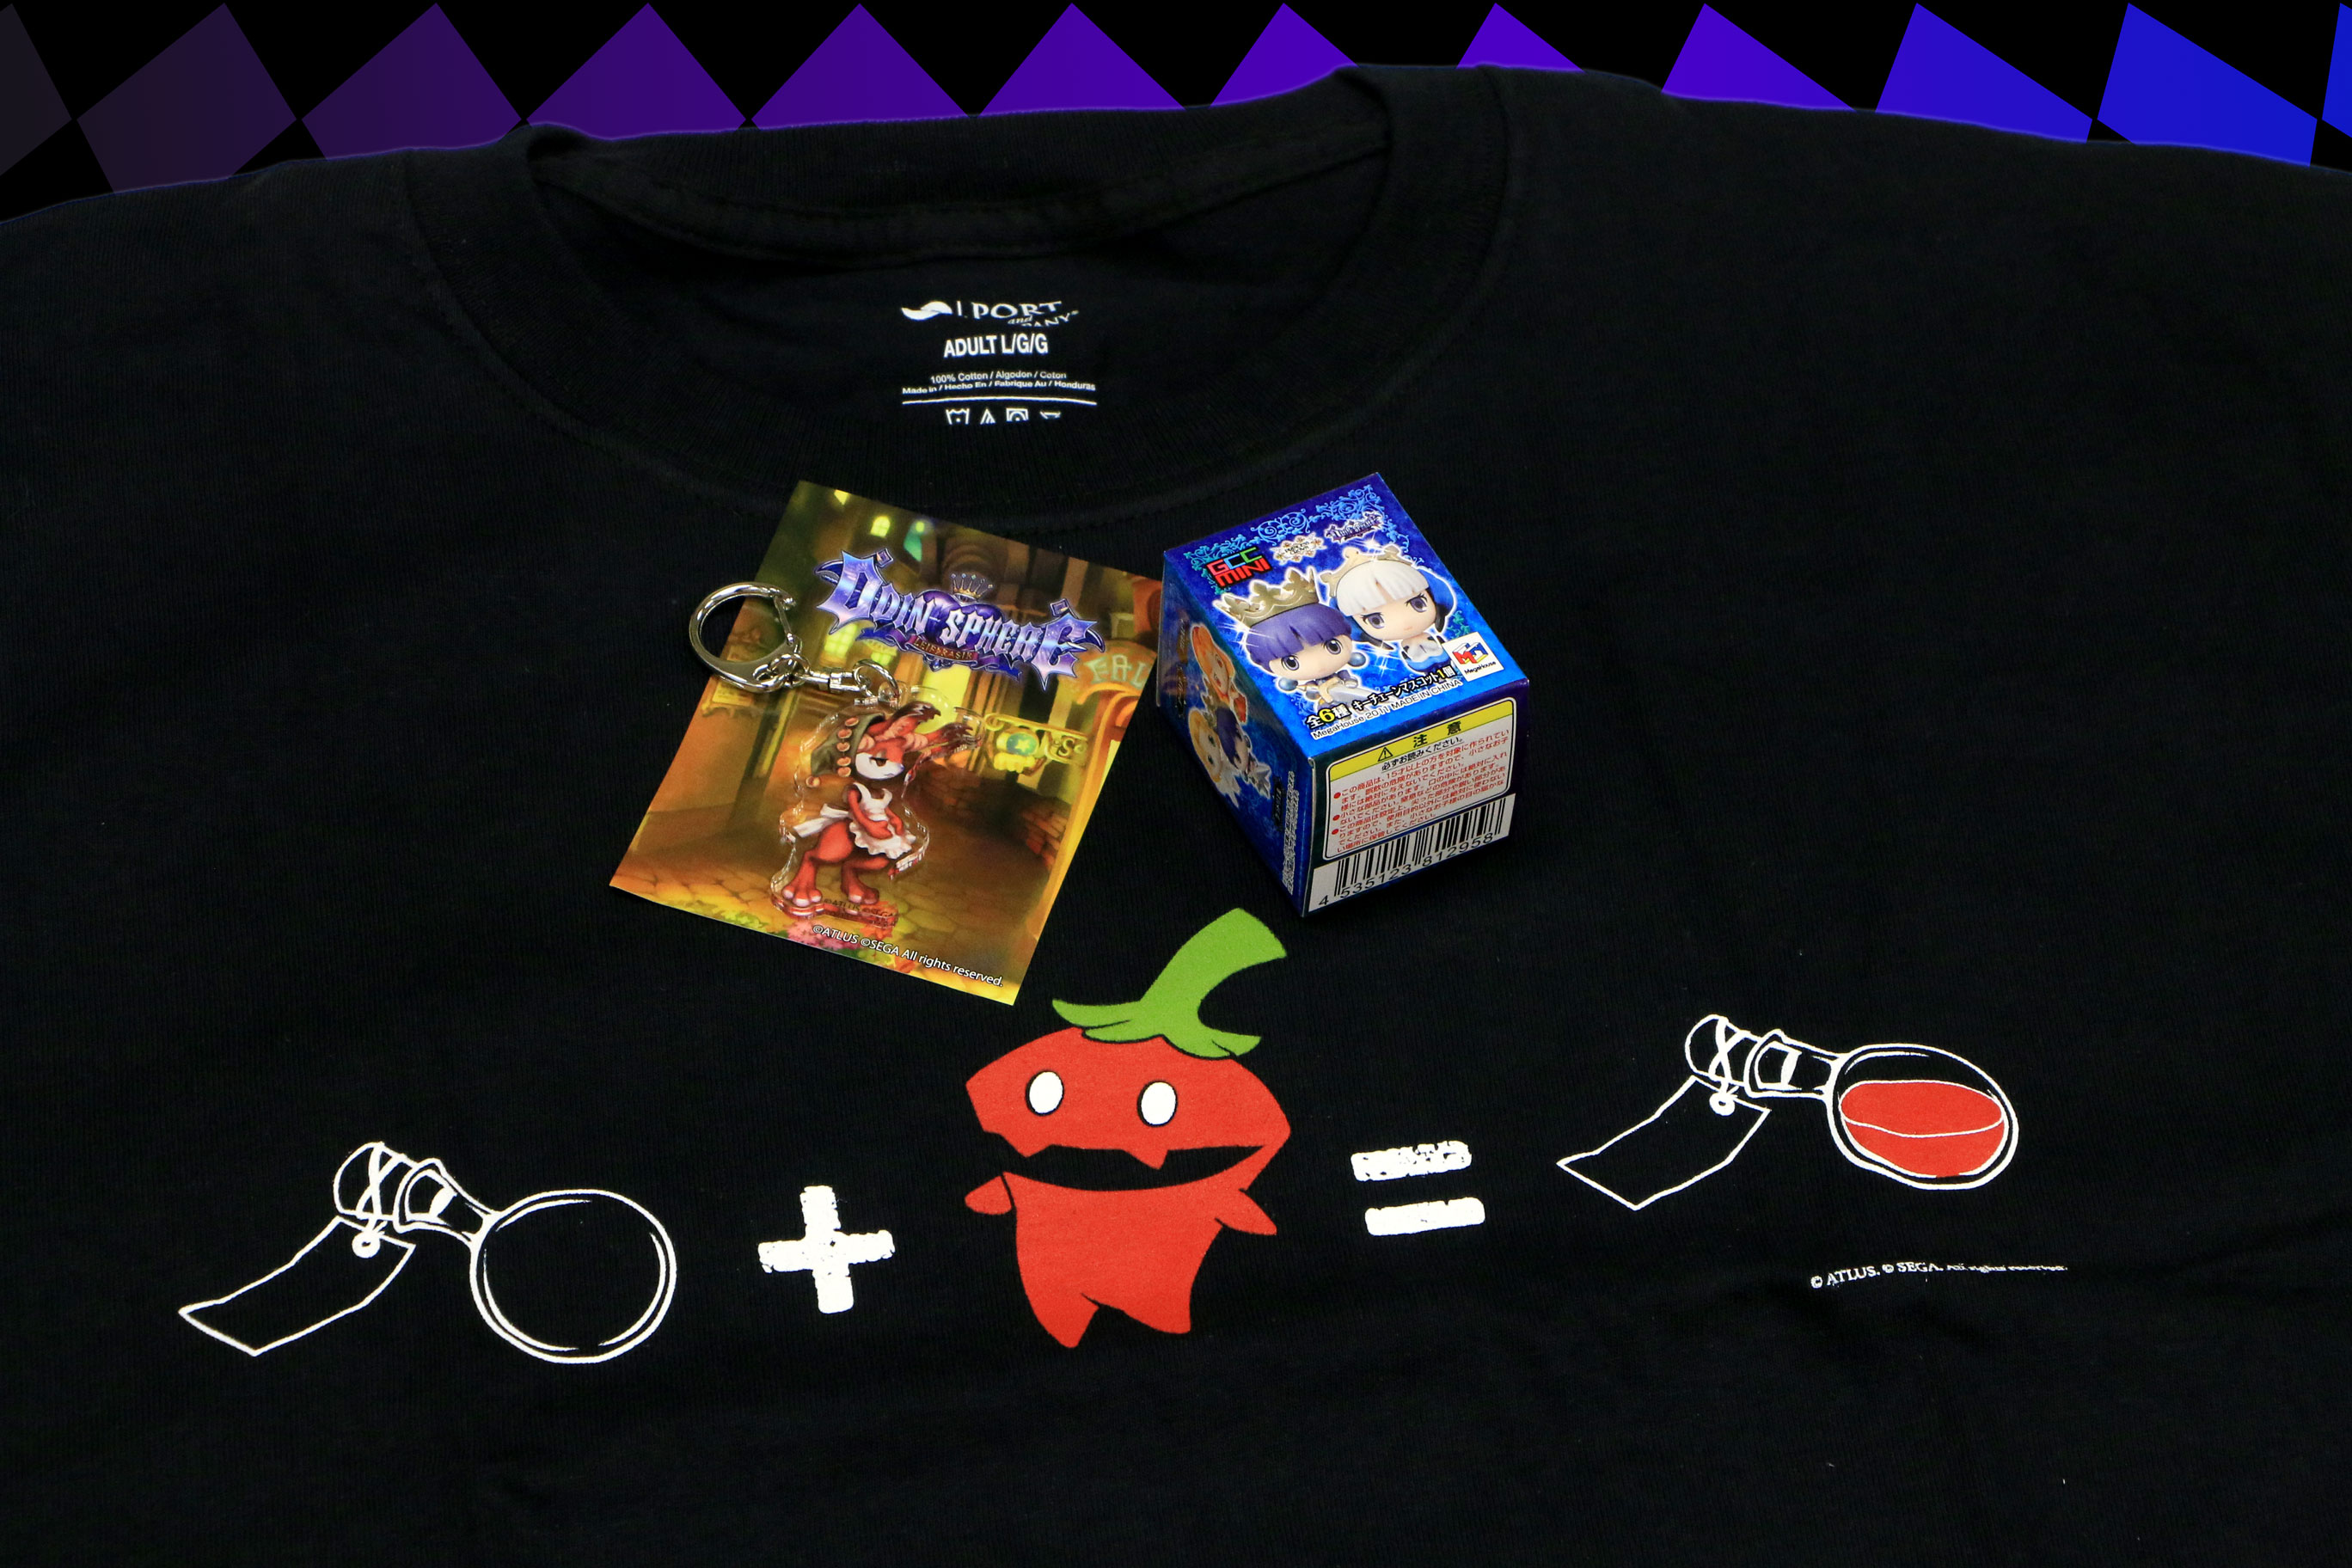 osl-shirt-prize-pack